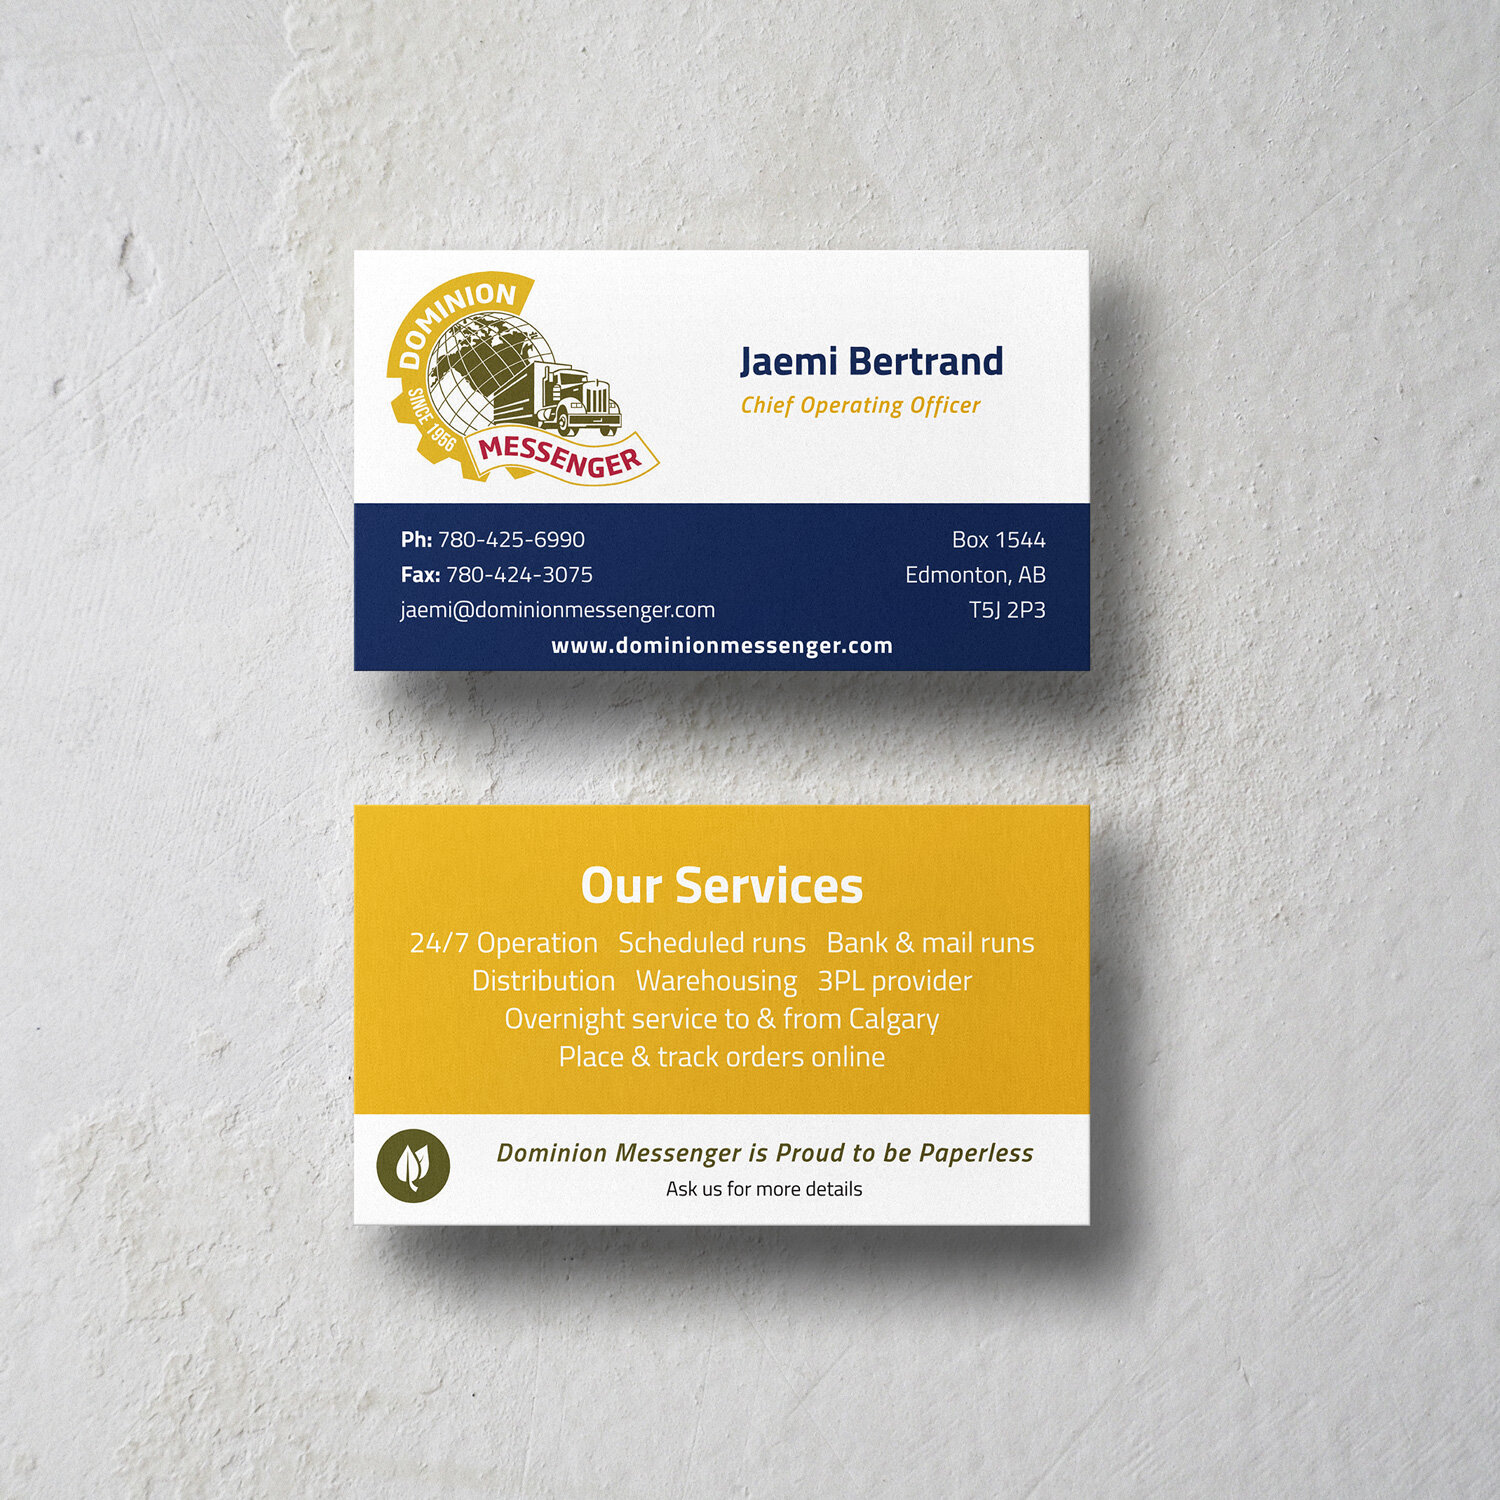 Dominion-Messenger-Business-Cards.jpg